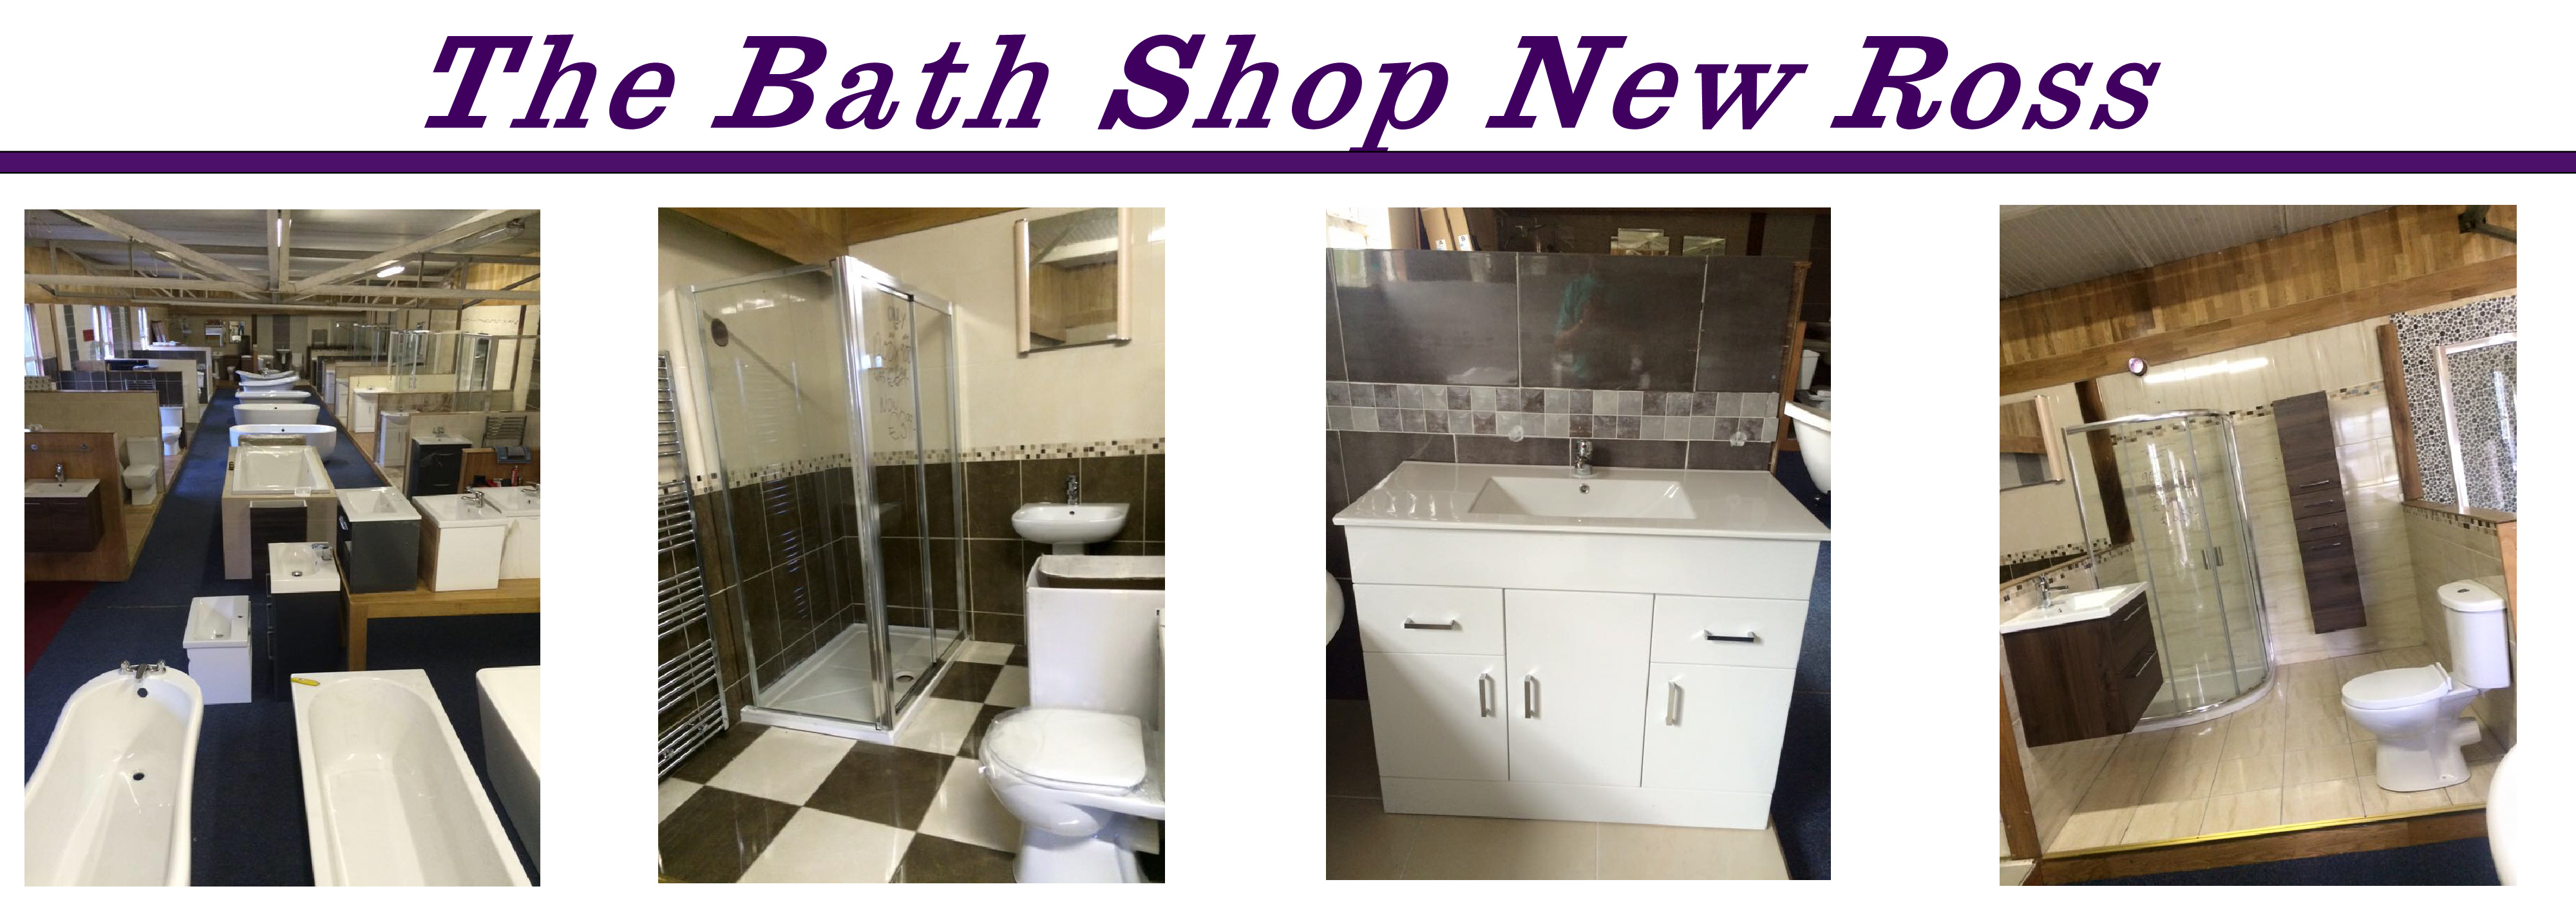 The Bath Shop, New Ross, Wexford